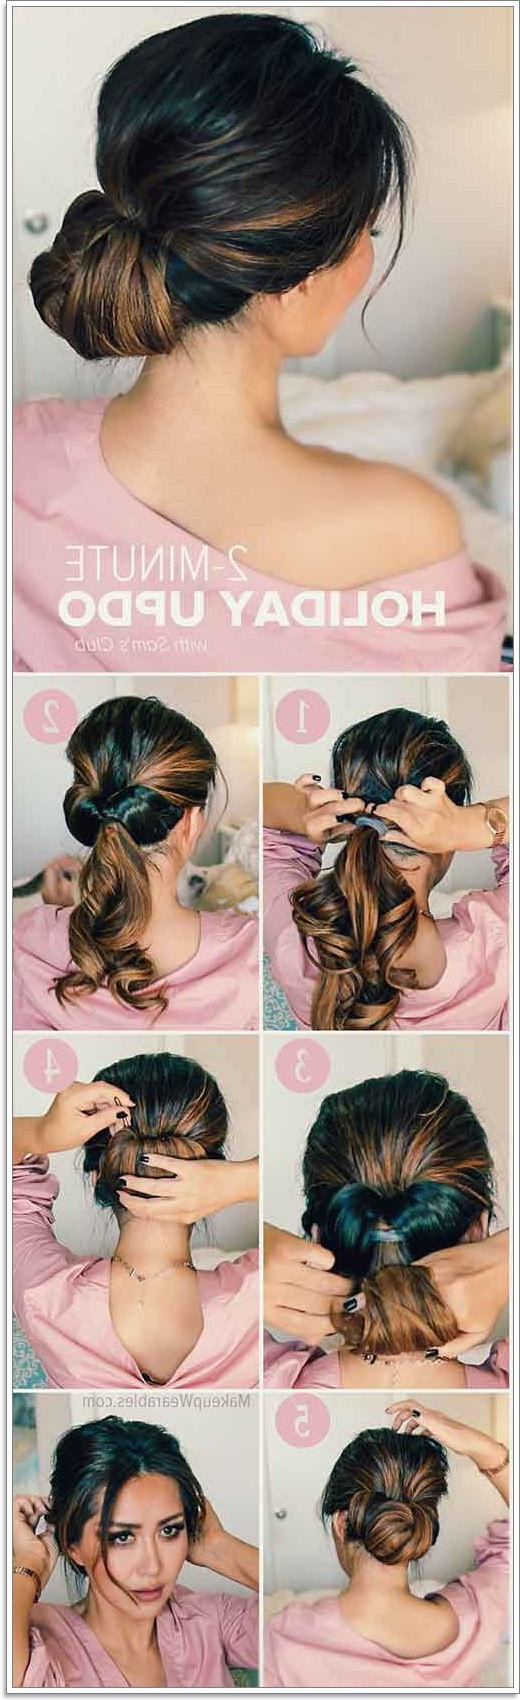 36 Fuss Free Messy Buns You Can Rock From Day To Night Intended For Favorite Elegant High Bouffant Bun Hairstyles (View 18 of 20)